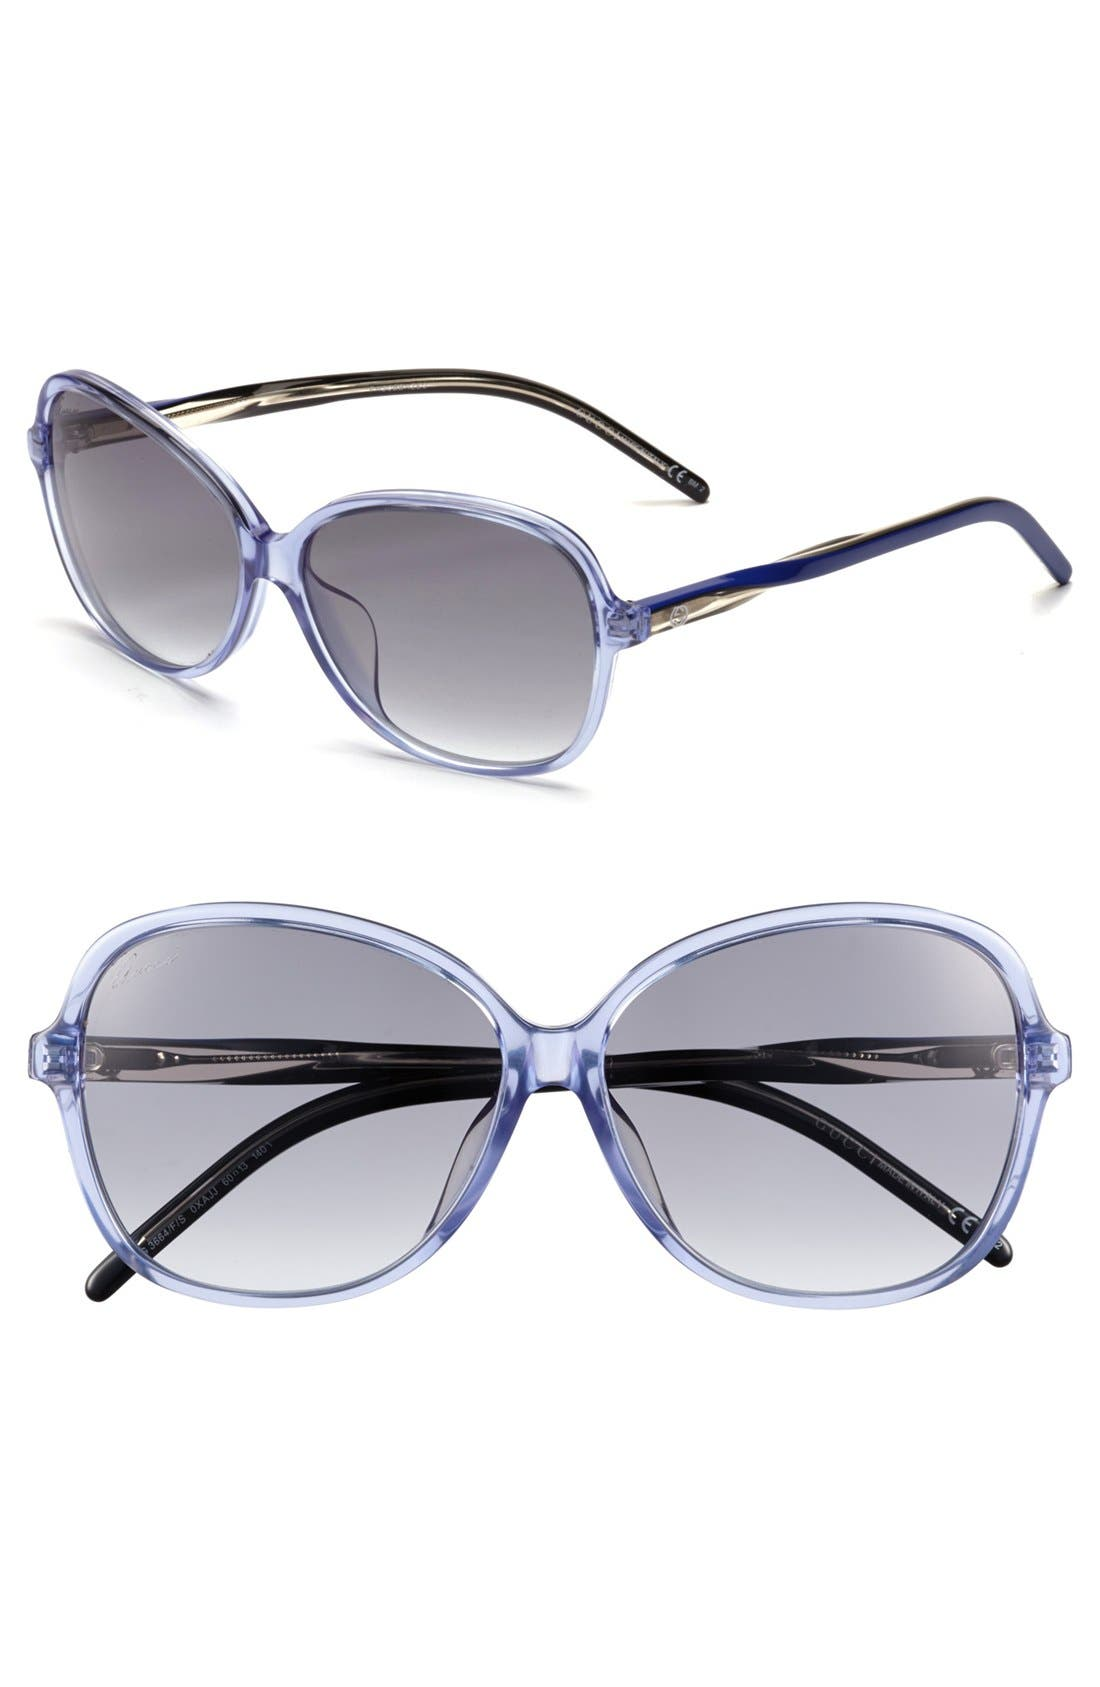 Main Image - Gucci 60mm Special Fit Sunglasses